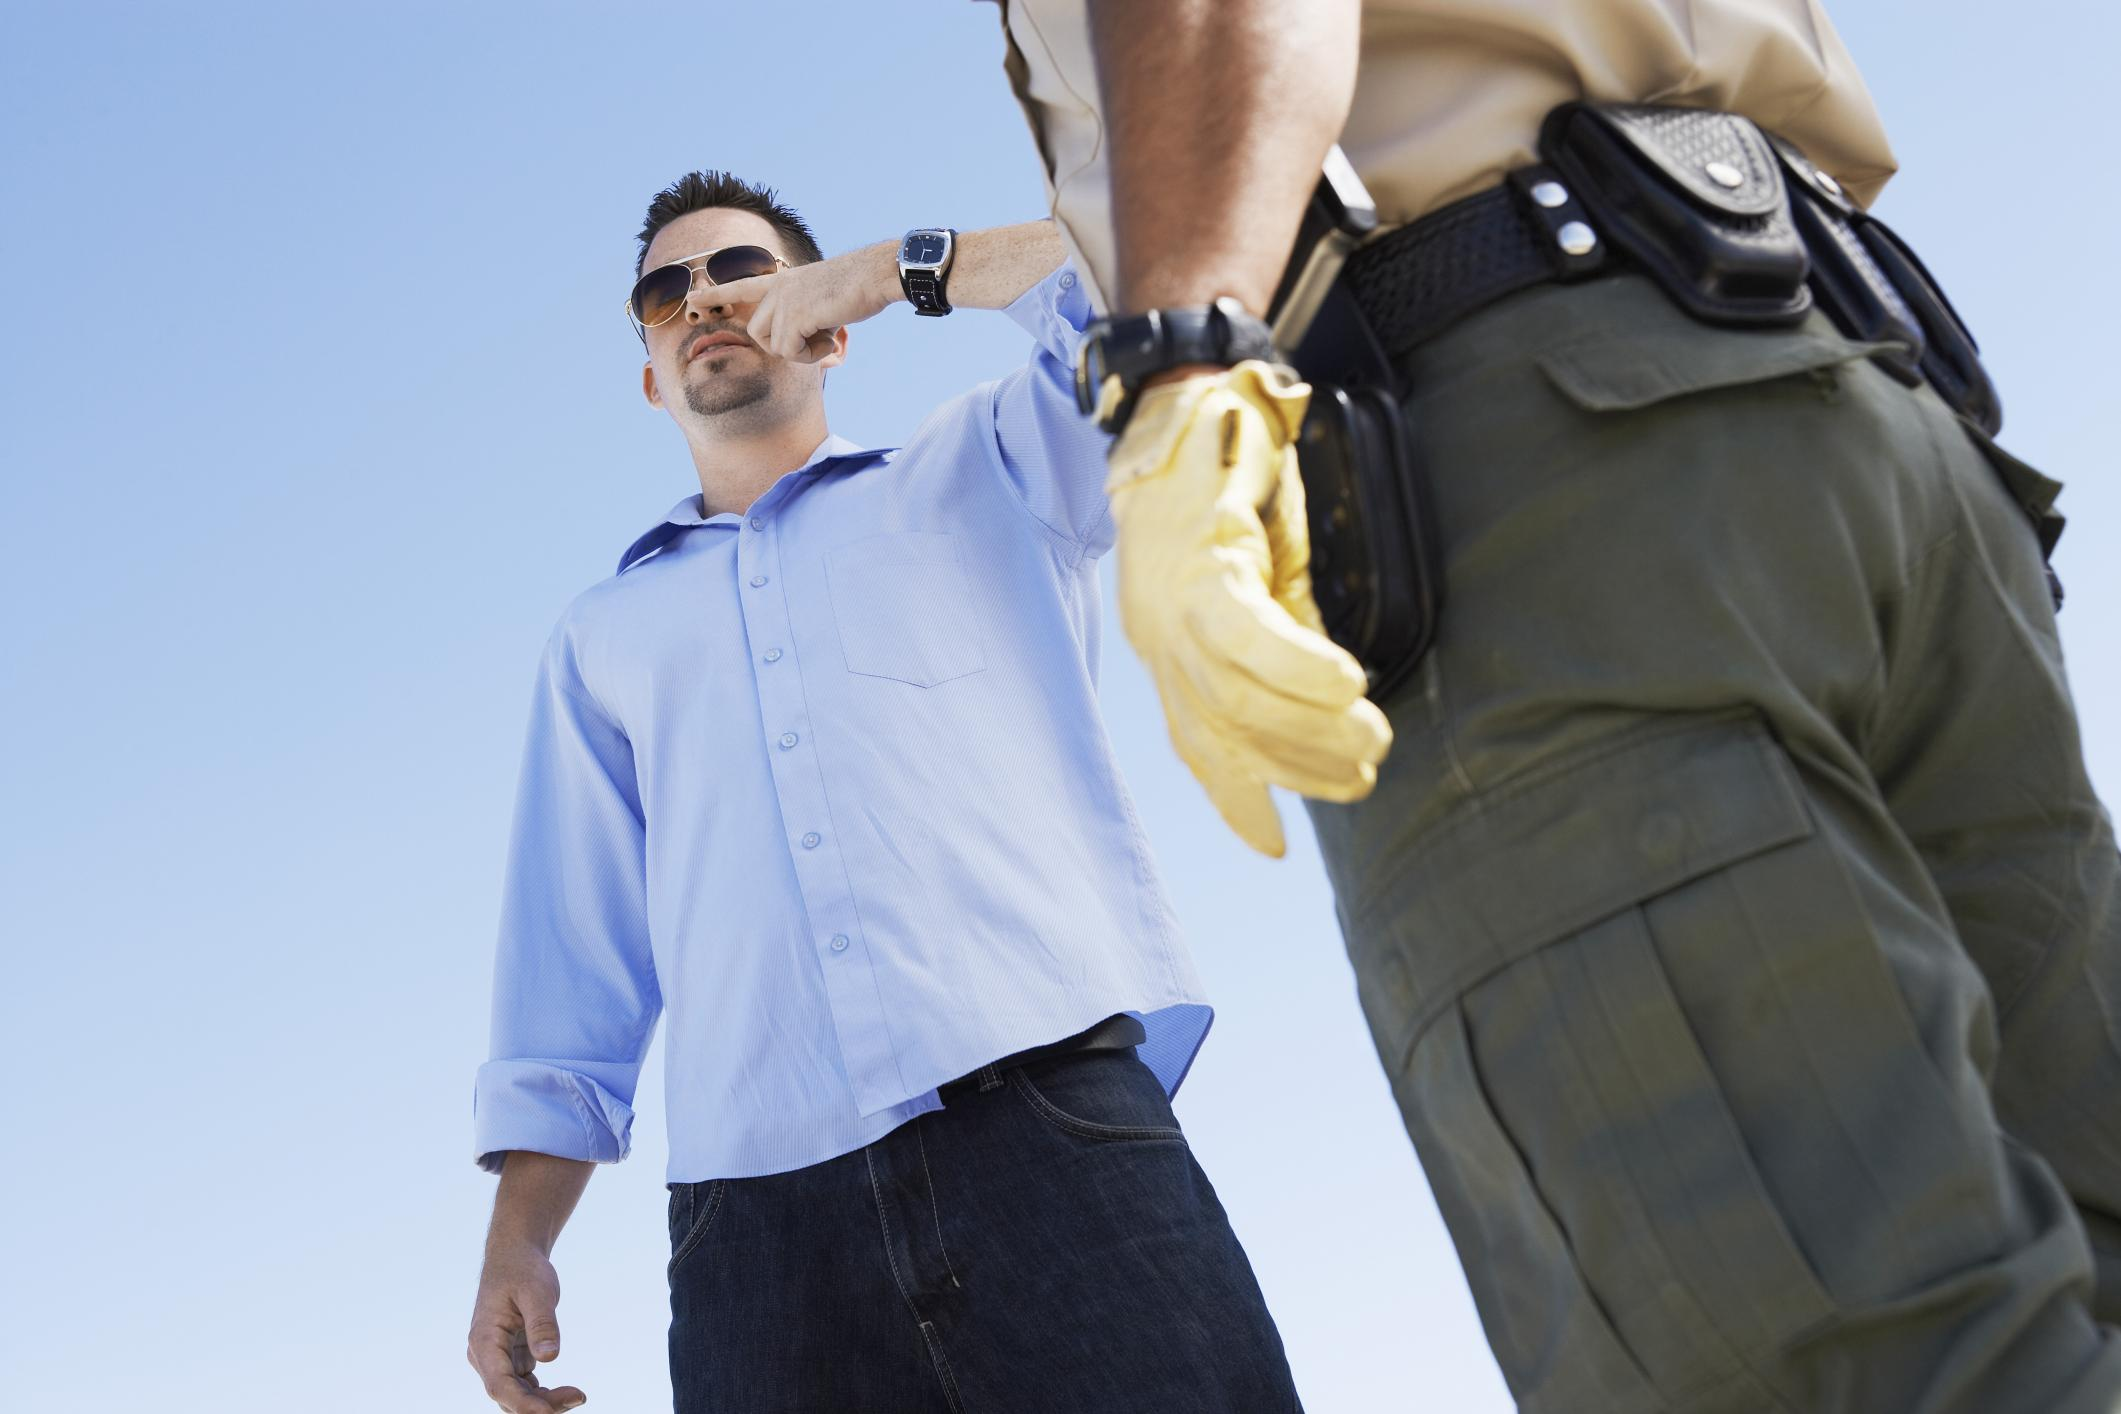 man-forced-to-take-a-field-sobriety-test-by-a-police-officer